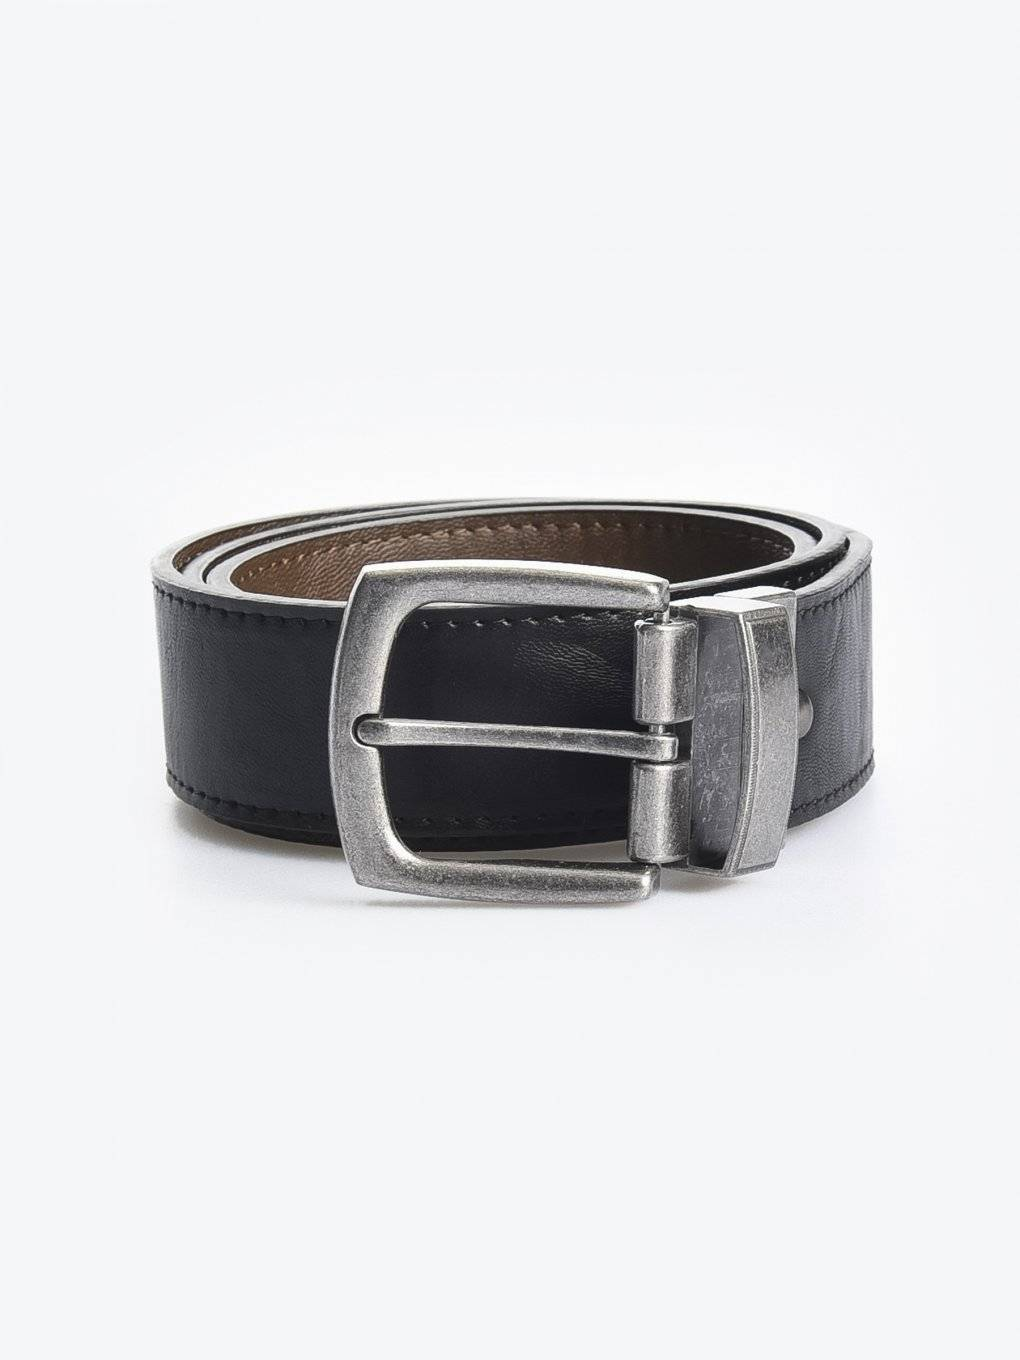 Reversible belt with metal buckle